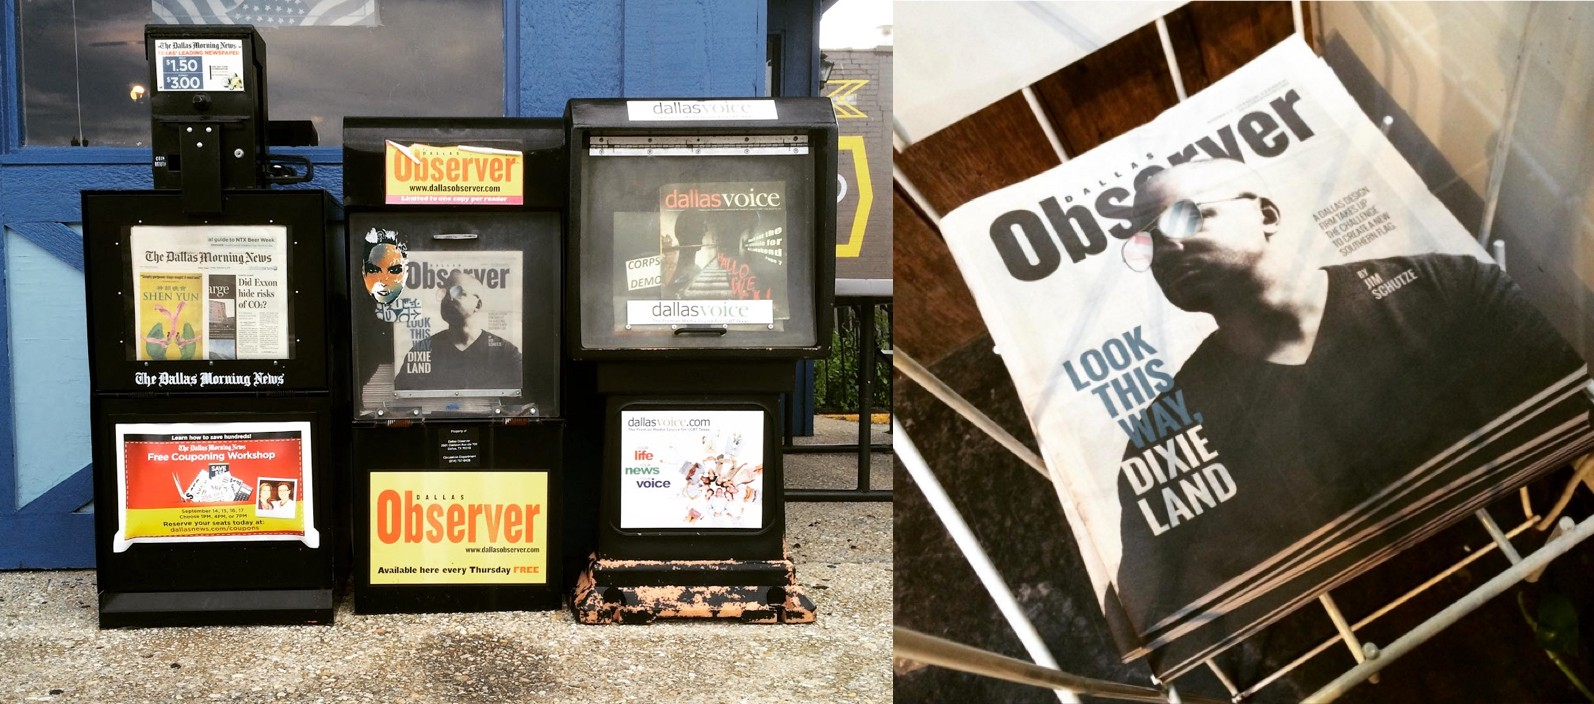 Photos of Dallas Observer newspapers on display in newspaper boxes and a tray.